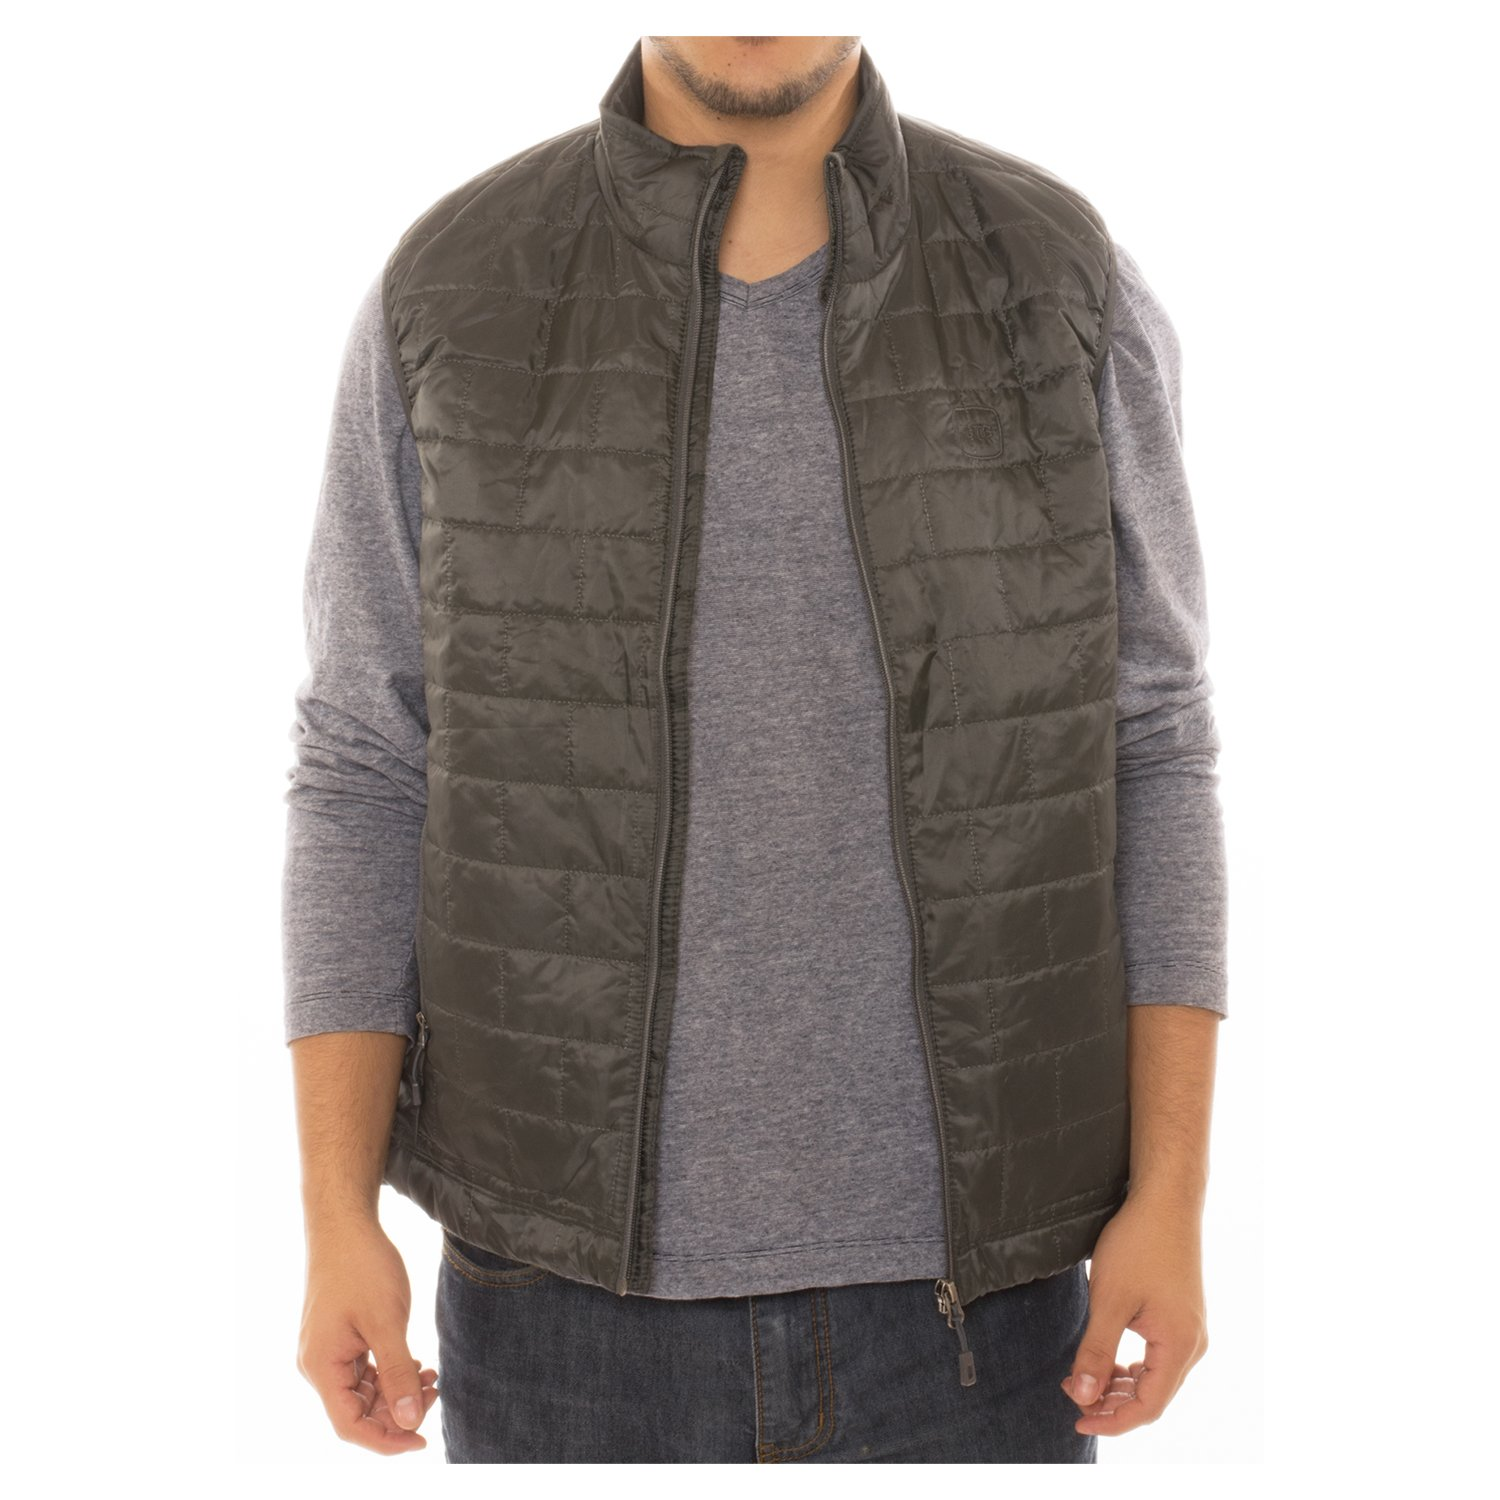 Altatac Men's Puffer Quilted Water Repellent Full Zipper Packable Vest Jacket Coat - NWT